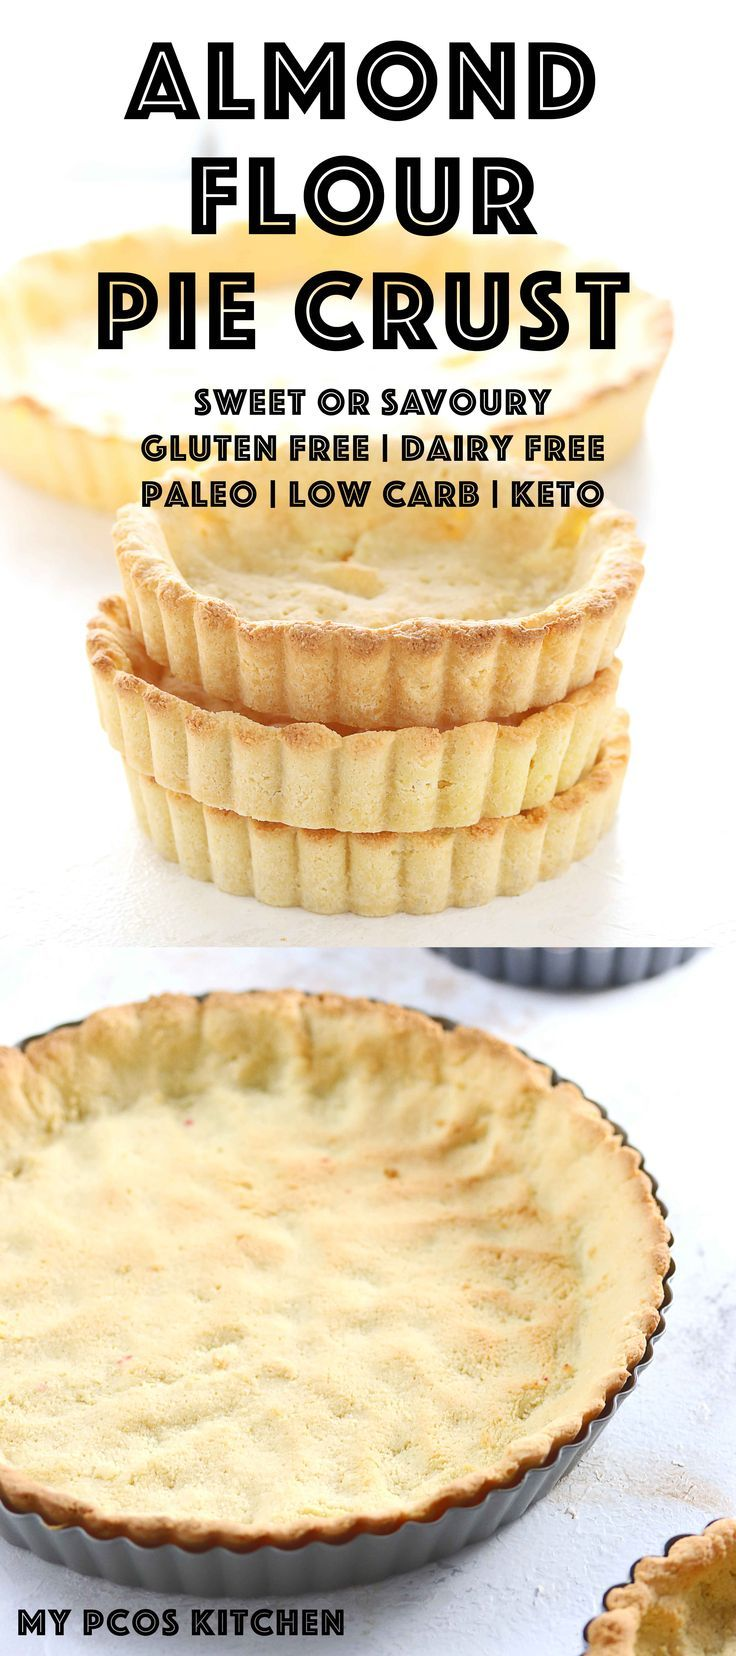 Low Carb Keto Almond Flour Pie Crust    My PCOS Ki